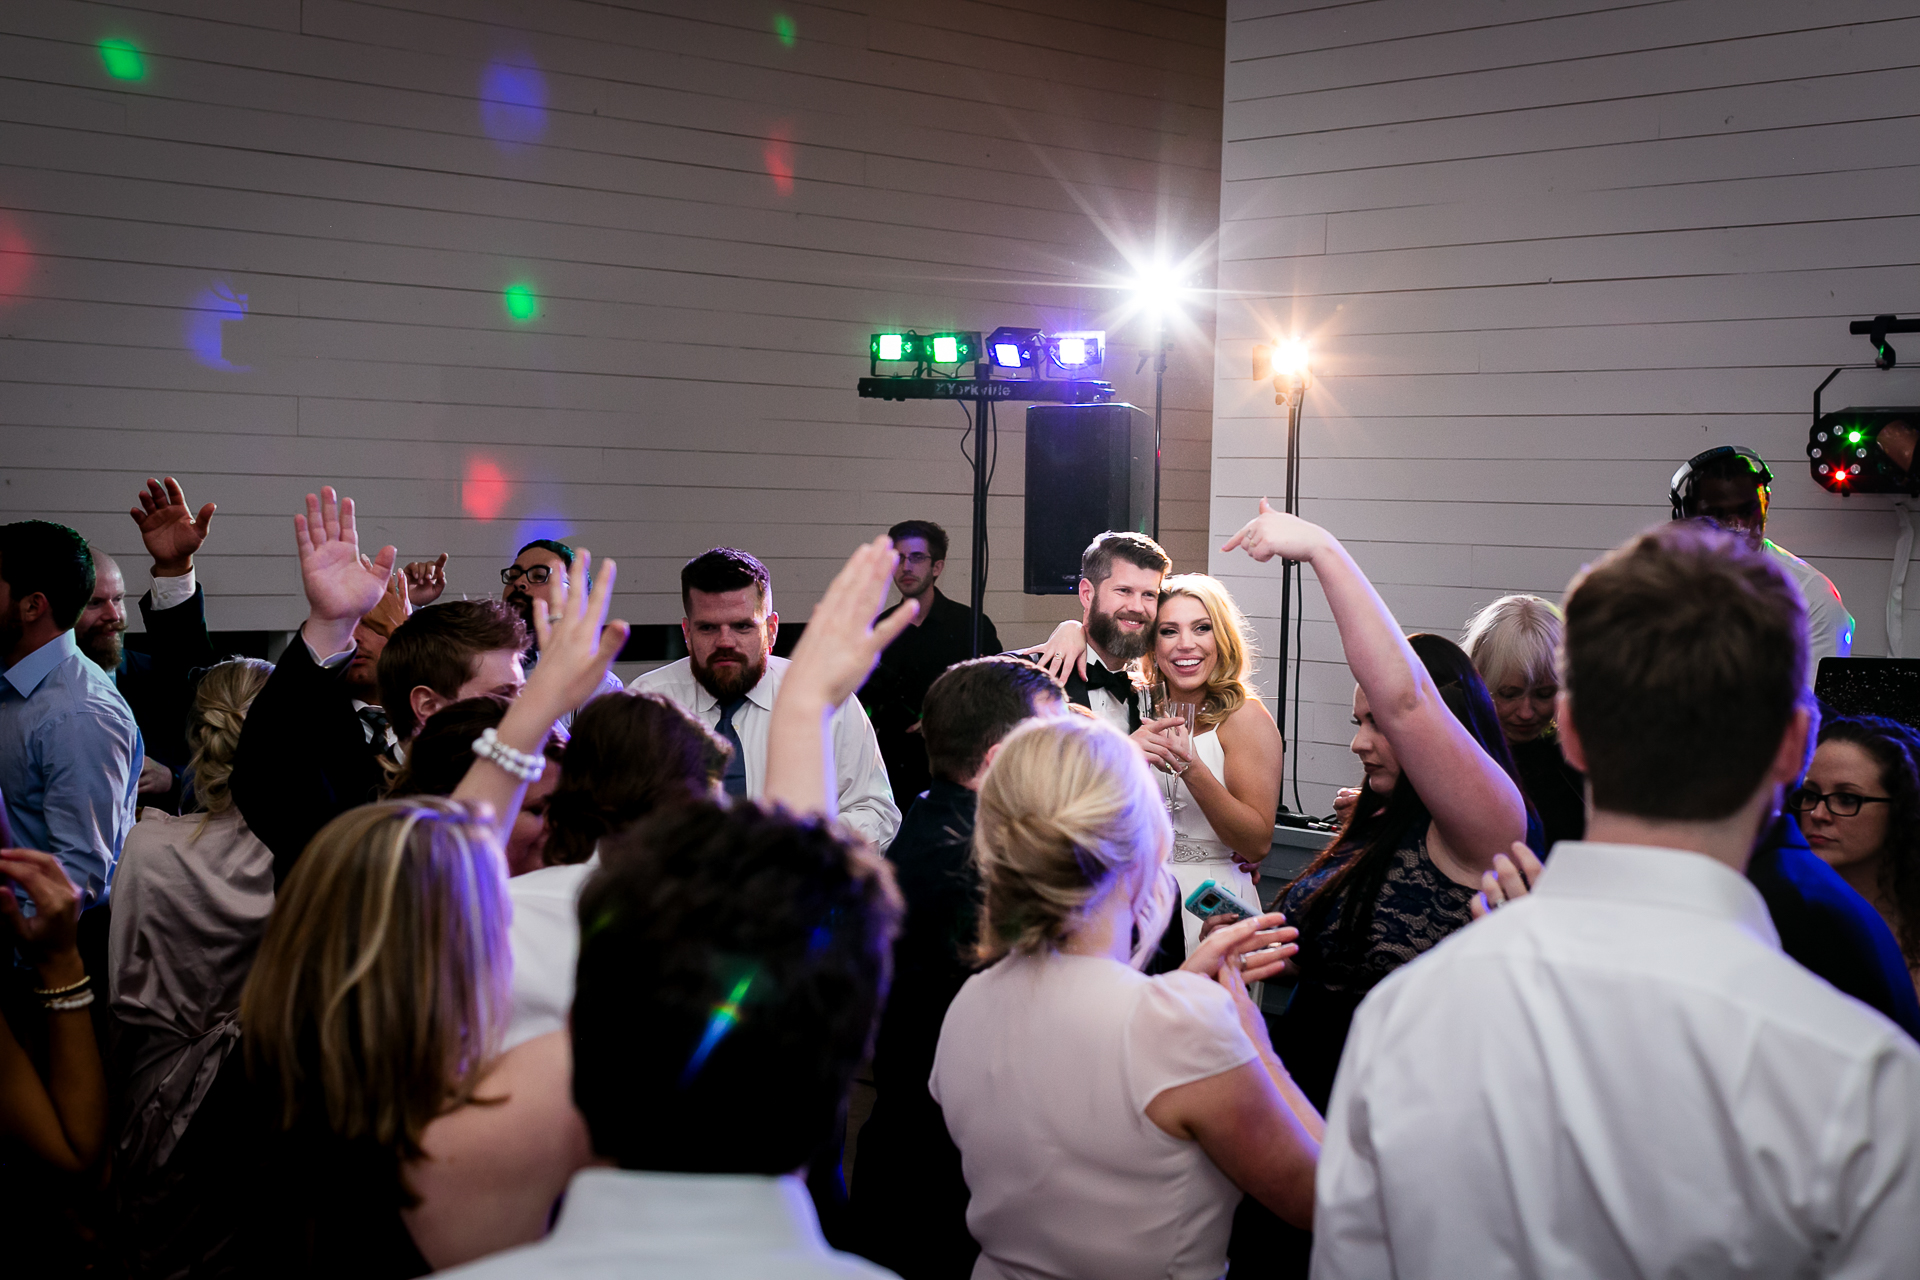 Prospect-House-Dripping-Springs-Wedding-Photograher-Videographer-009.jpg